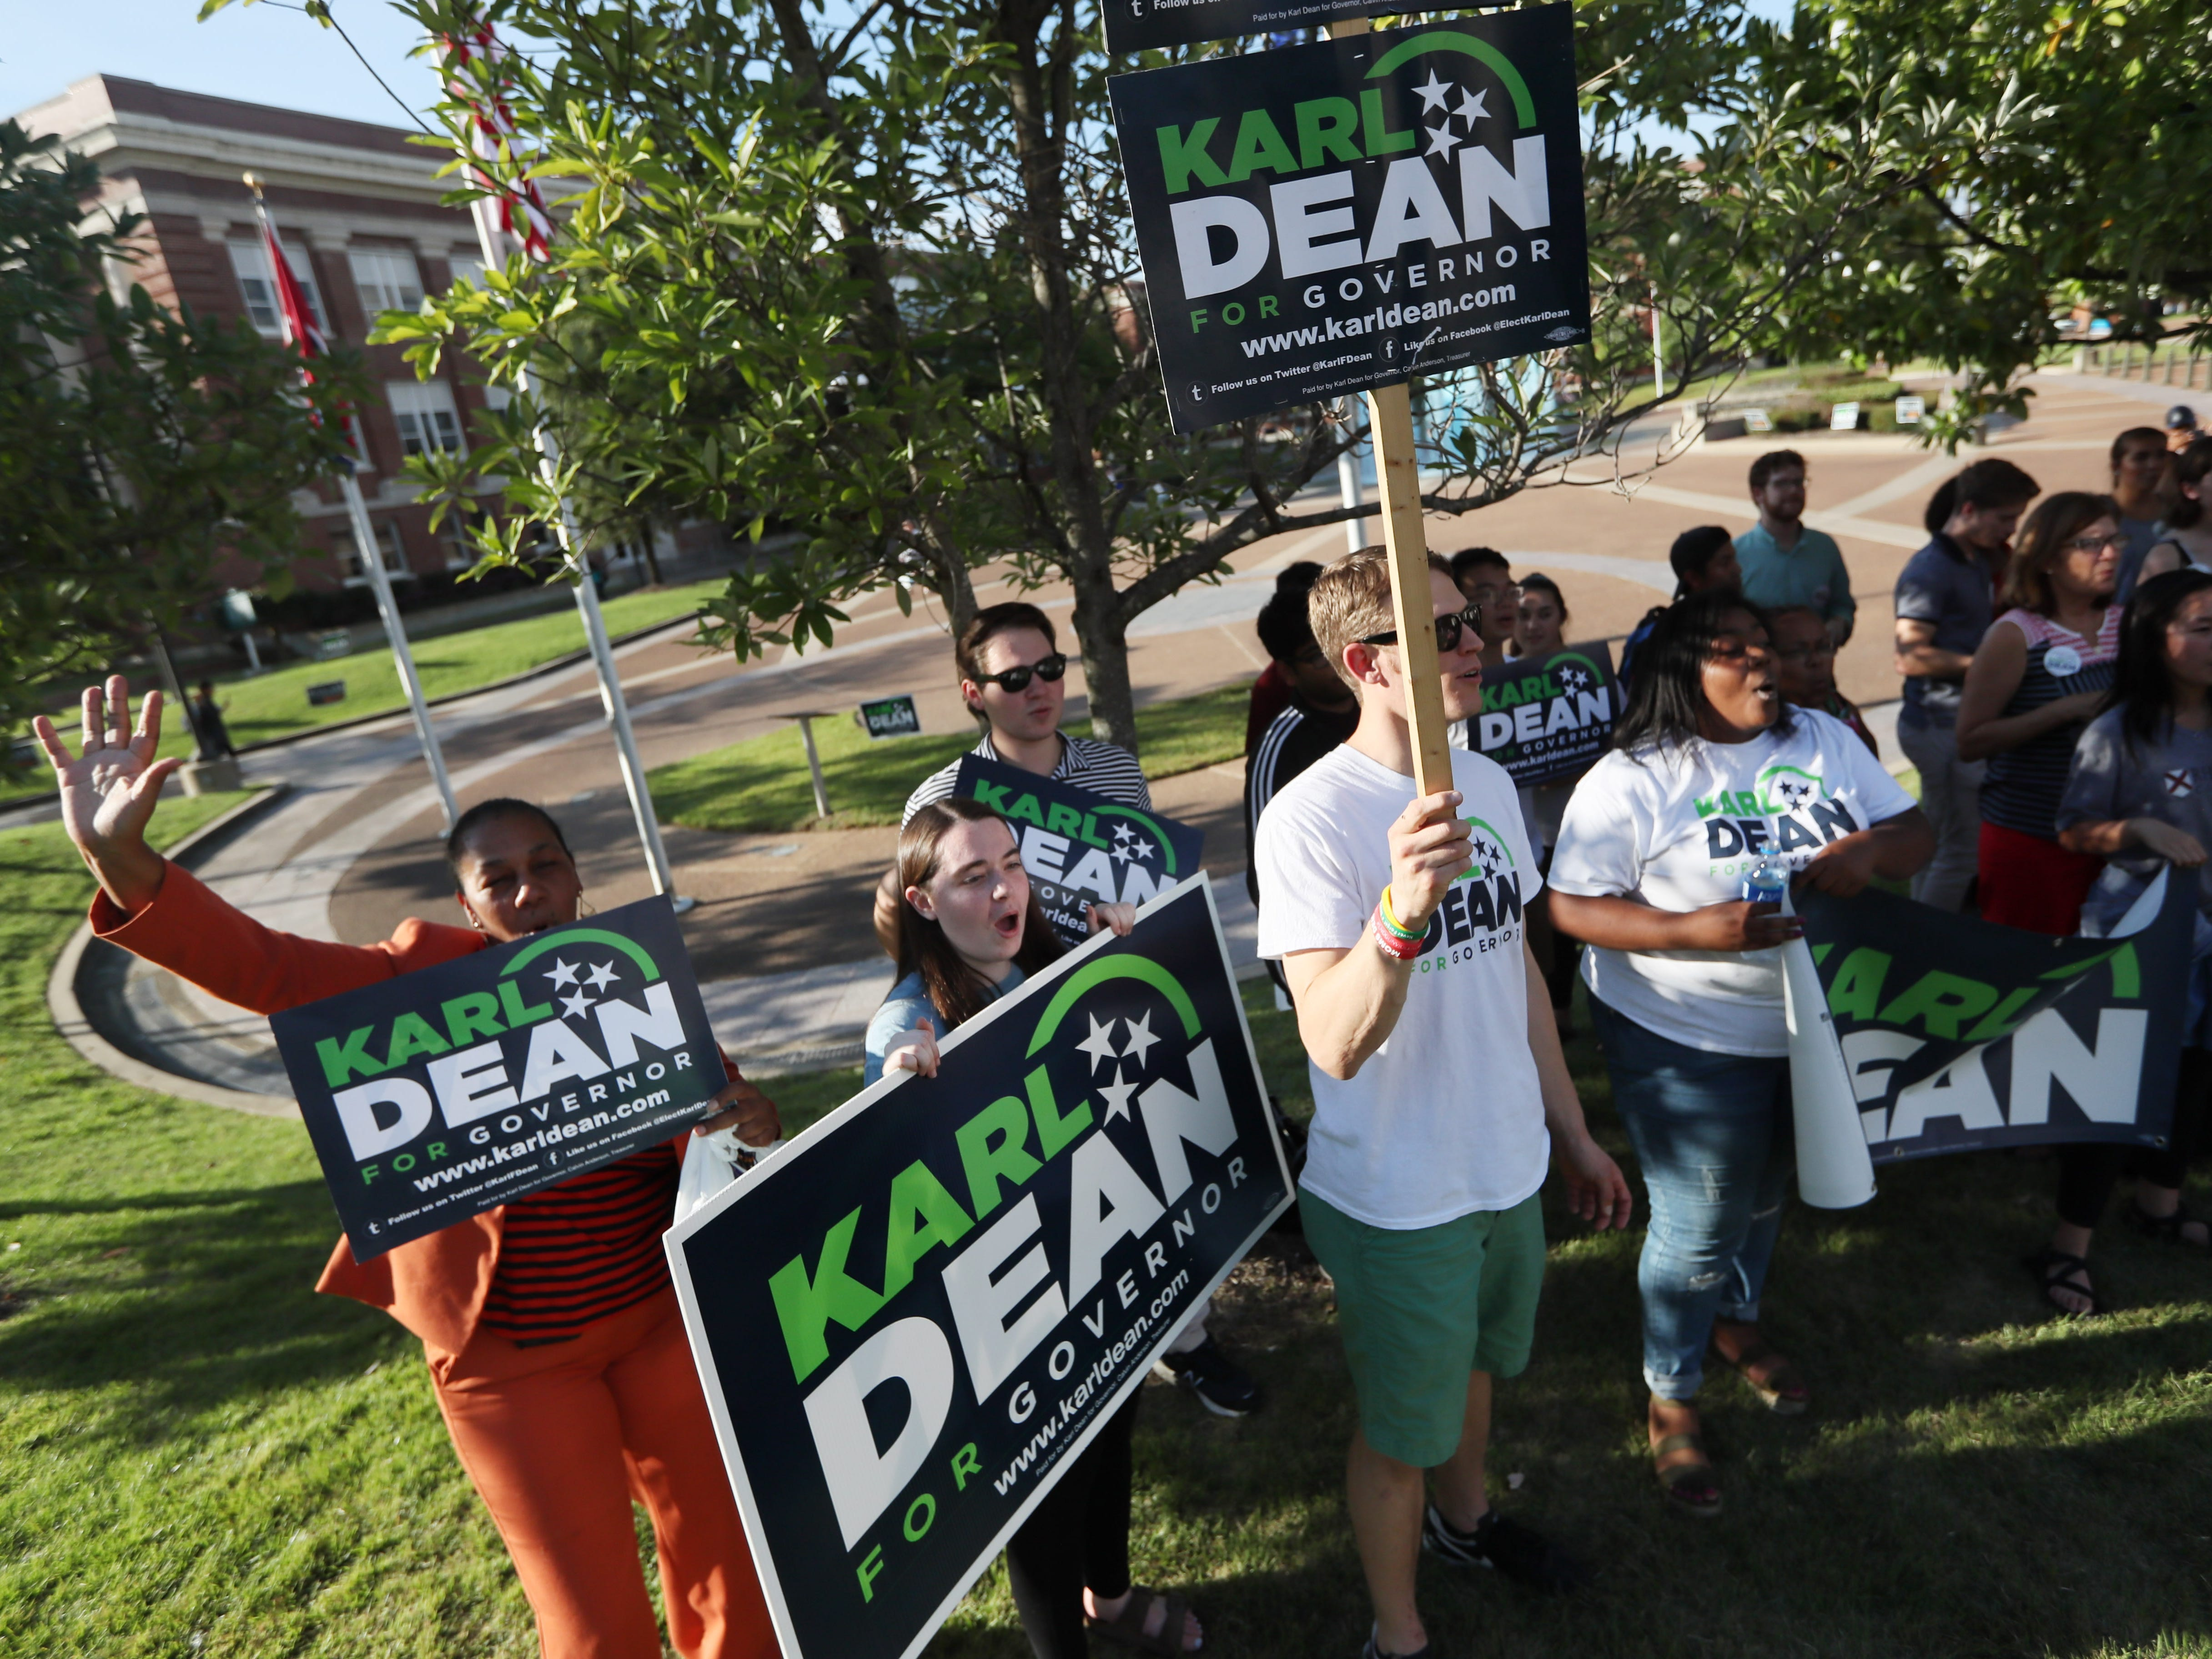 Karl Dean supporters rally outside the debate venue, University of Memphis' Michael D. Rose Theater in Memphis, Tenn., on Tuesday, Oct. 2, 2018.